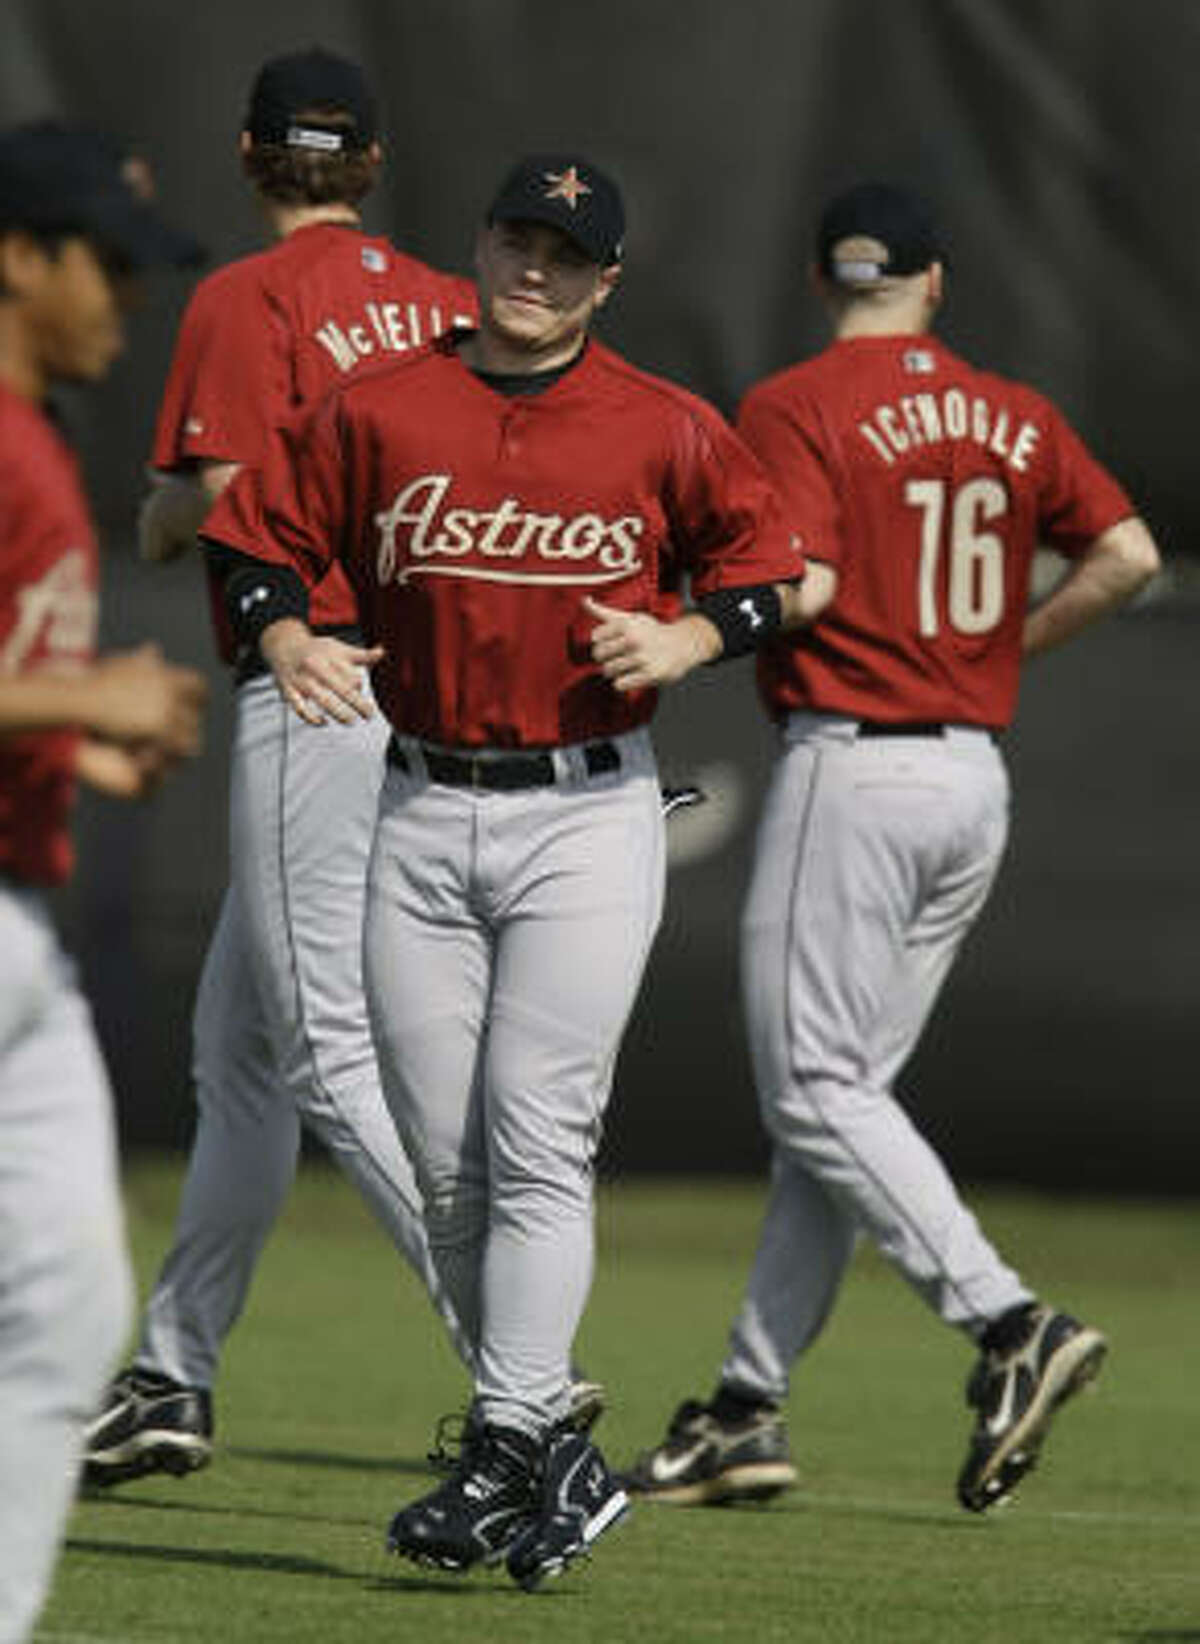 After bouncing between catcher and third base in his first years in the organization, Koby Clemens (center) has now played his first 10 games in left field, and first base is also an option.